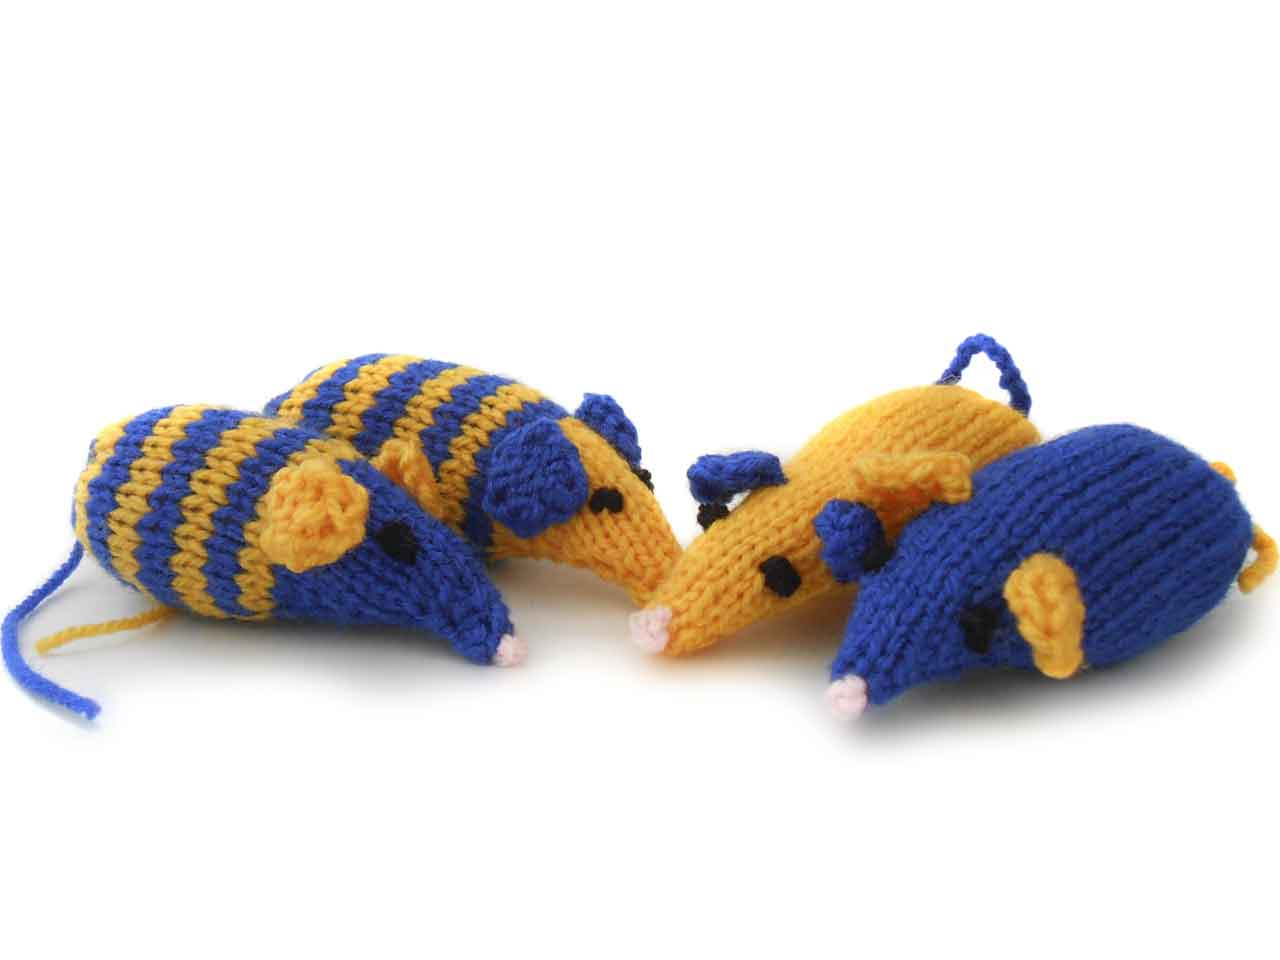 Knitting Patterns For Cat Toys Knitted Catnip Mice Saga